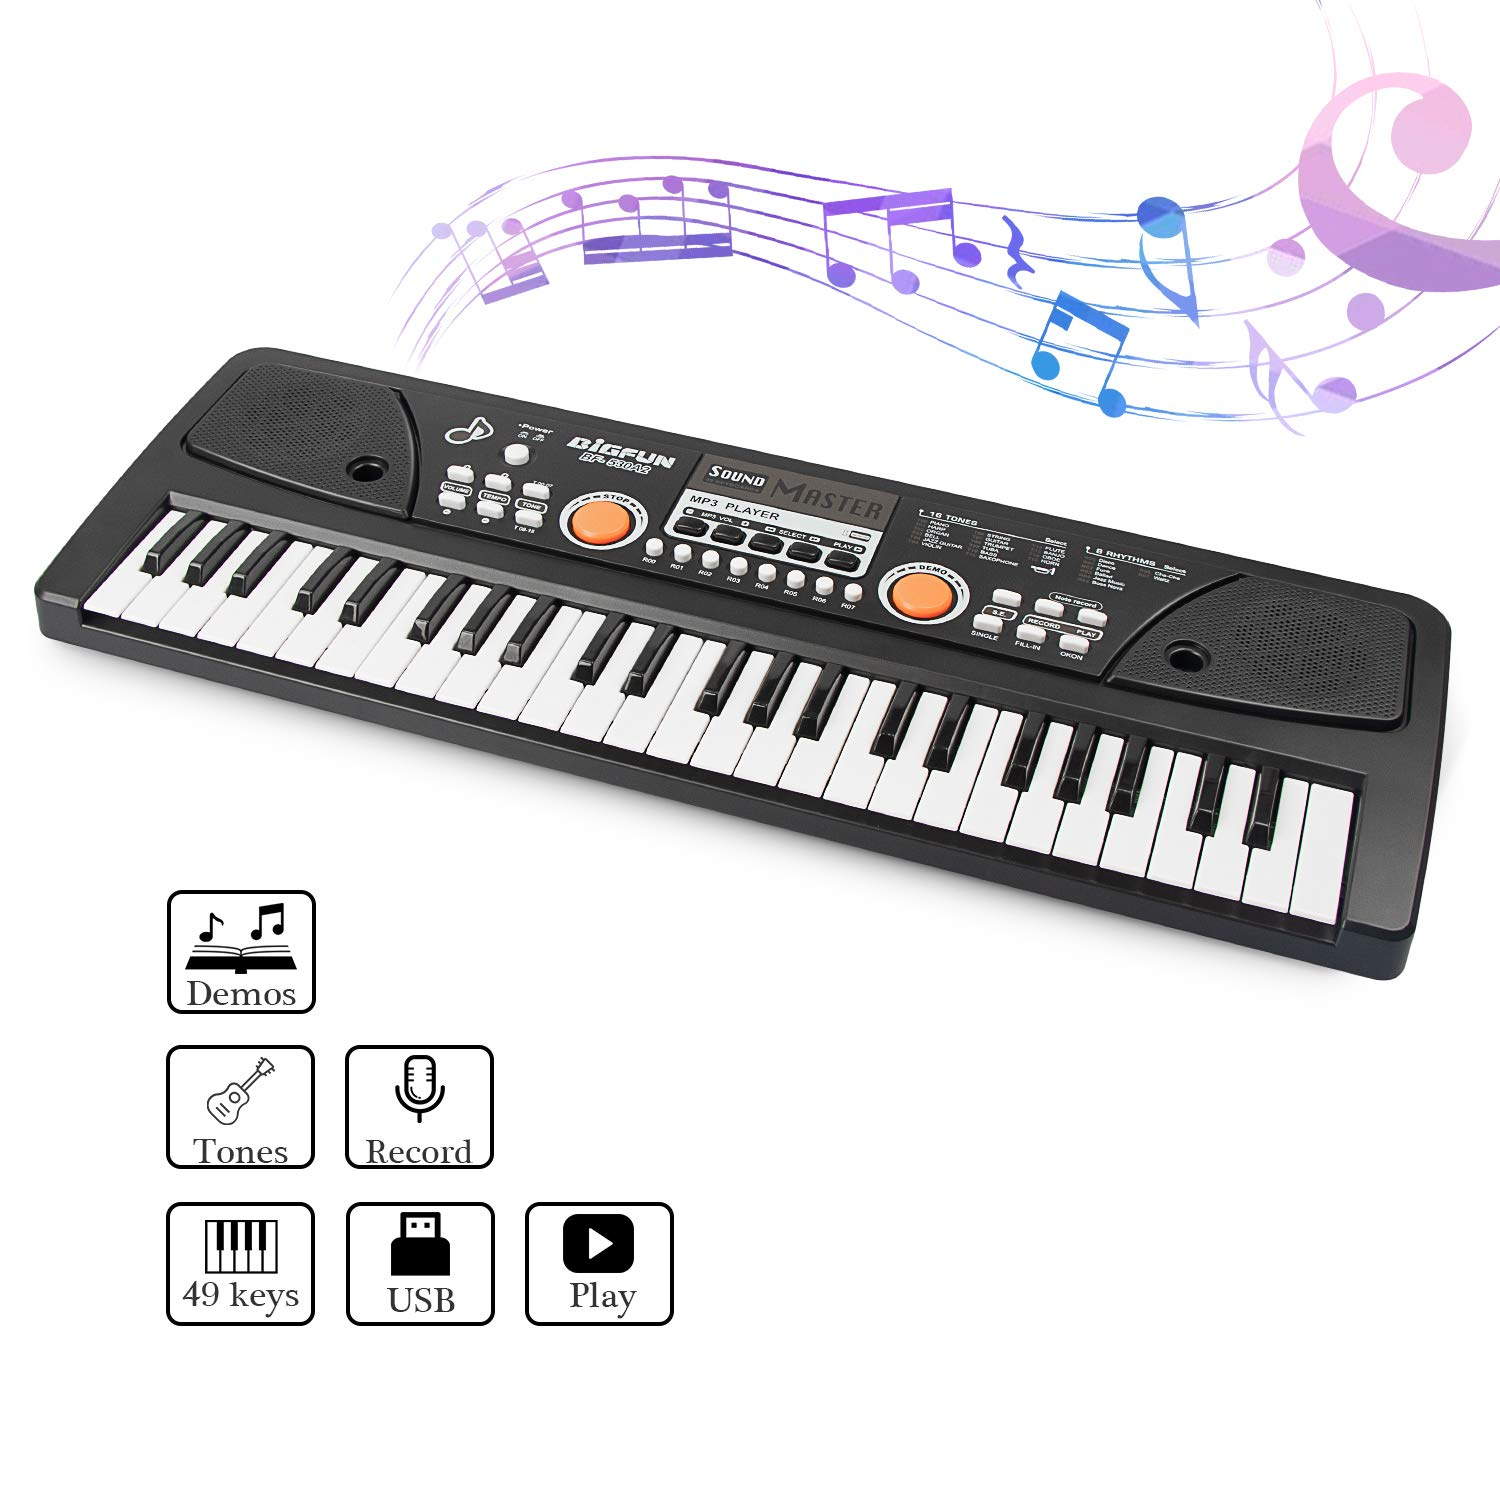 aPerfectLife 49 Keys Piano Keyboard for Kids Multifunction Portable Piano Electronic Keyboard Music Instrument for Kids Early Learning Educational Toy (Black) by aPerfectLife (Image #2)